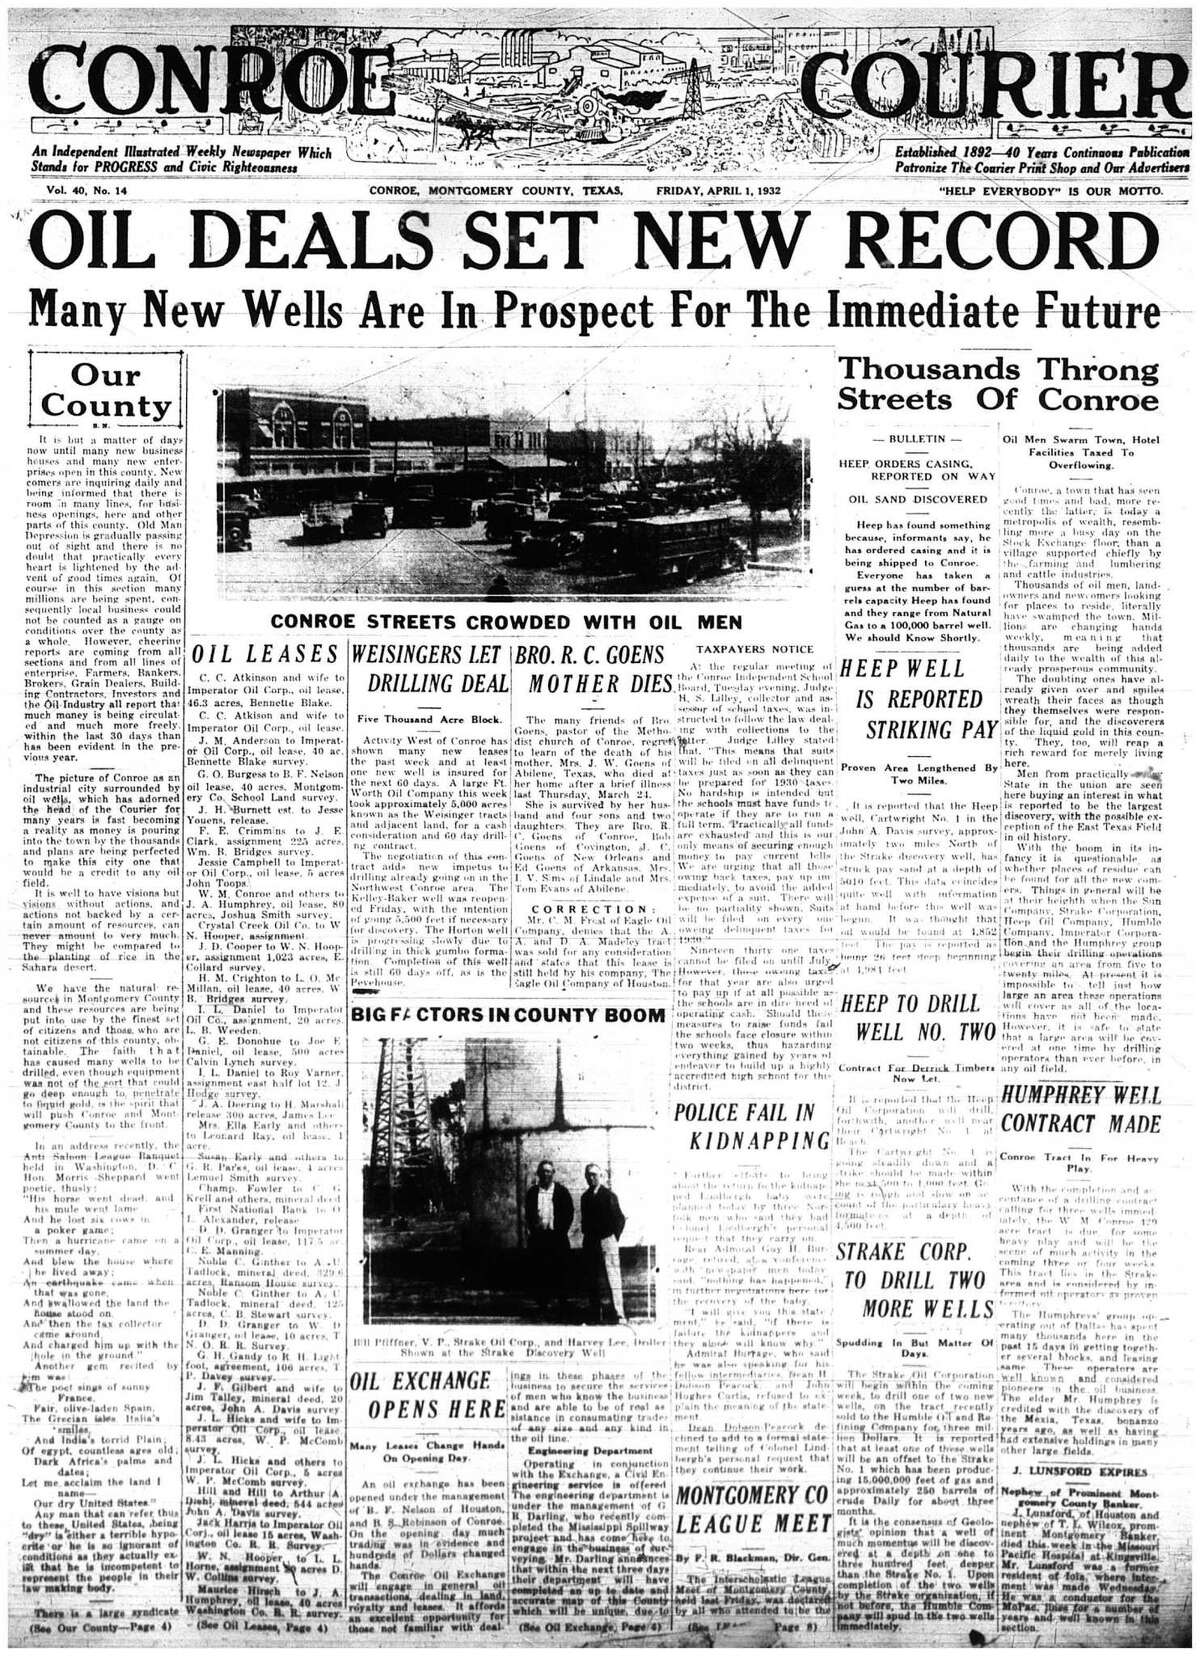 The Courier from April 1, 1932